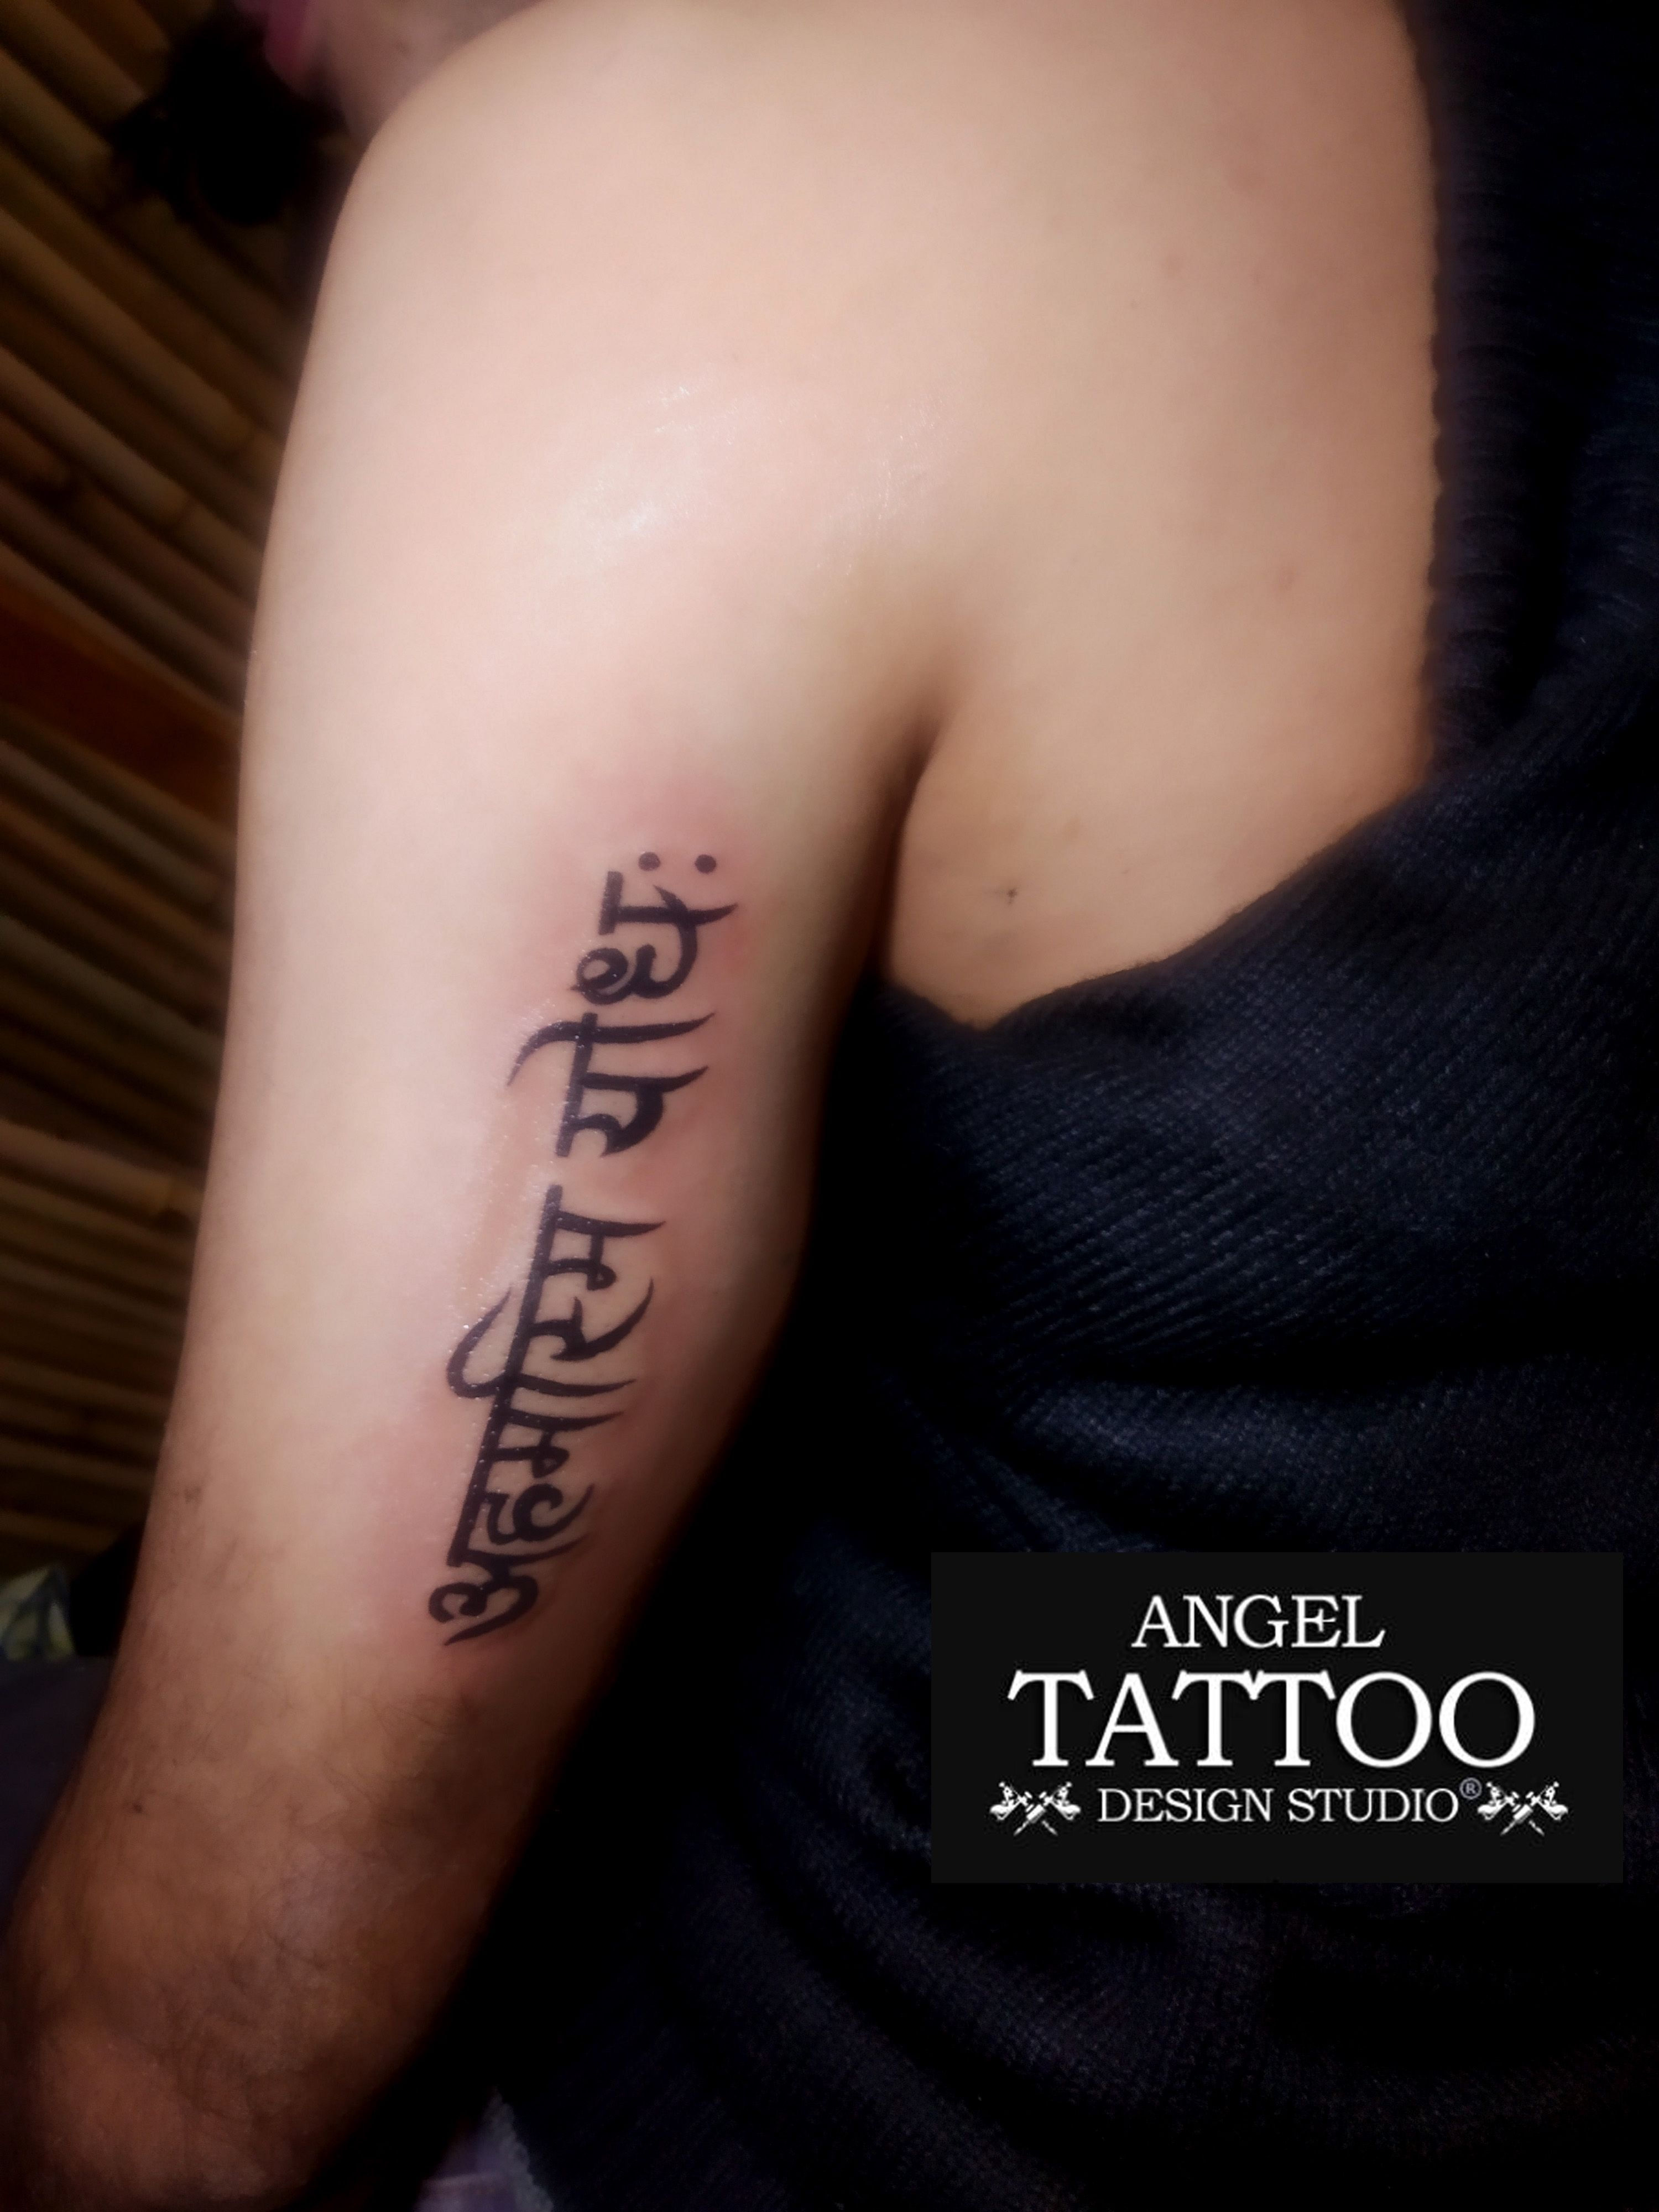 c7d9cba746a2f Ahmasmi yodha tattoo made in sanskrit at Gurgaon; call 8826602967 for  appointment #ahmasmiyodhatattoo #sanskrittattoo #hinditattoo #indiantattoo  #hindu ...